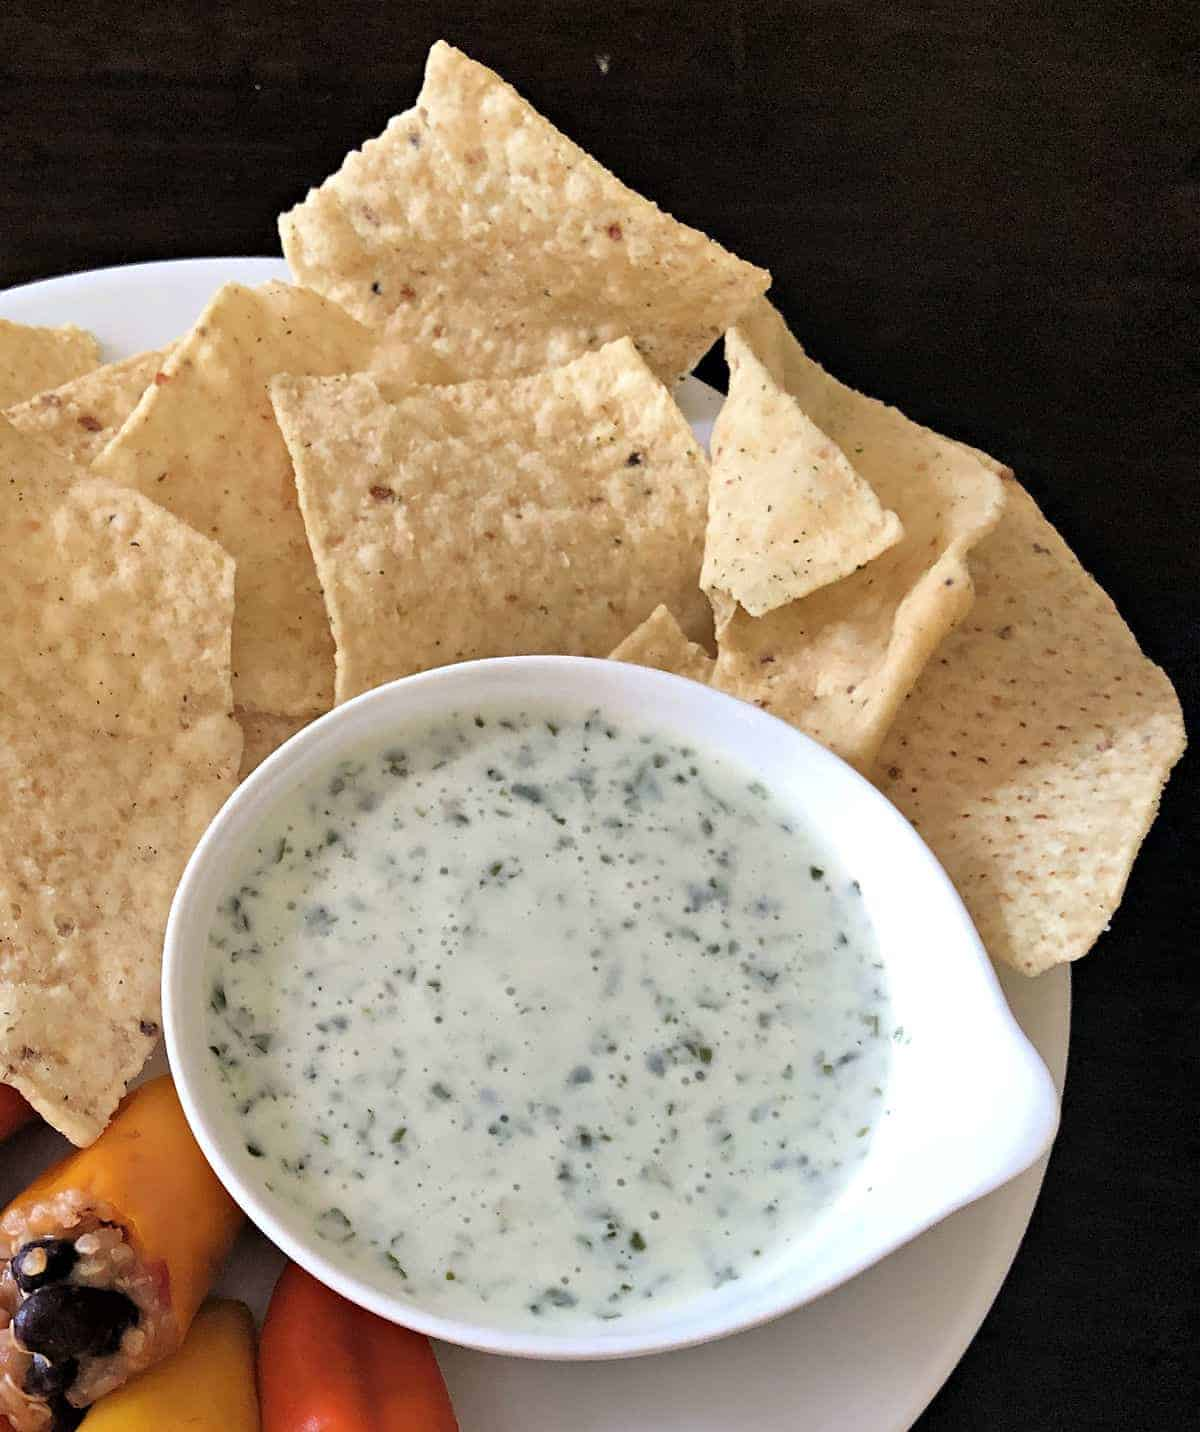 cilantro lime sauce on a plate with chips